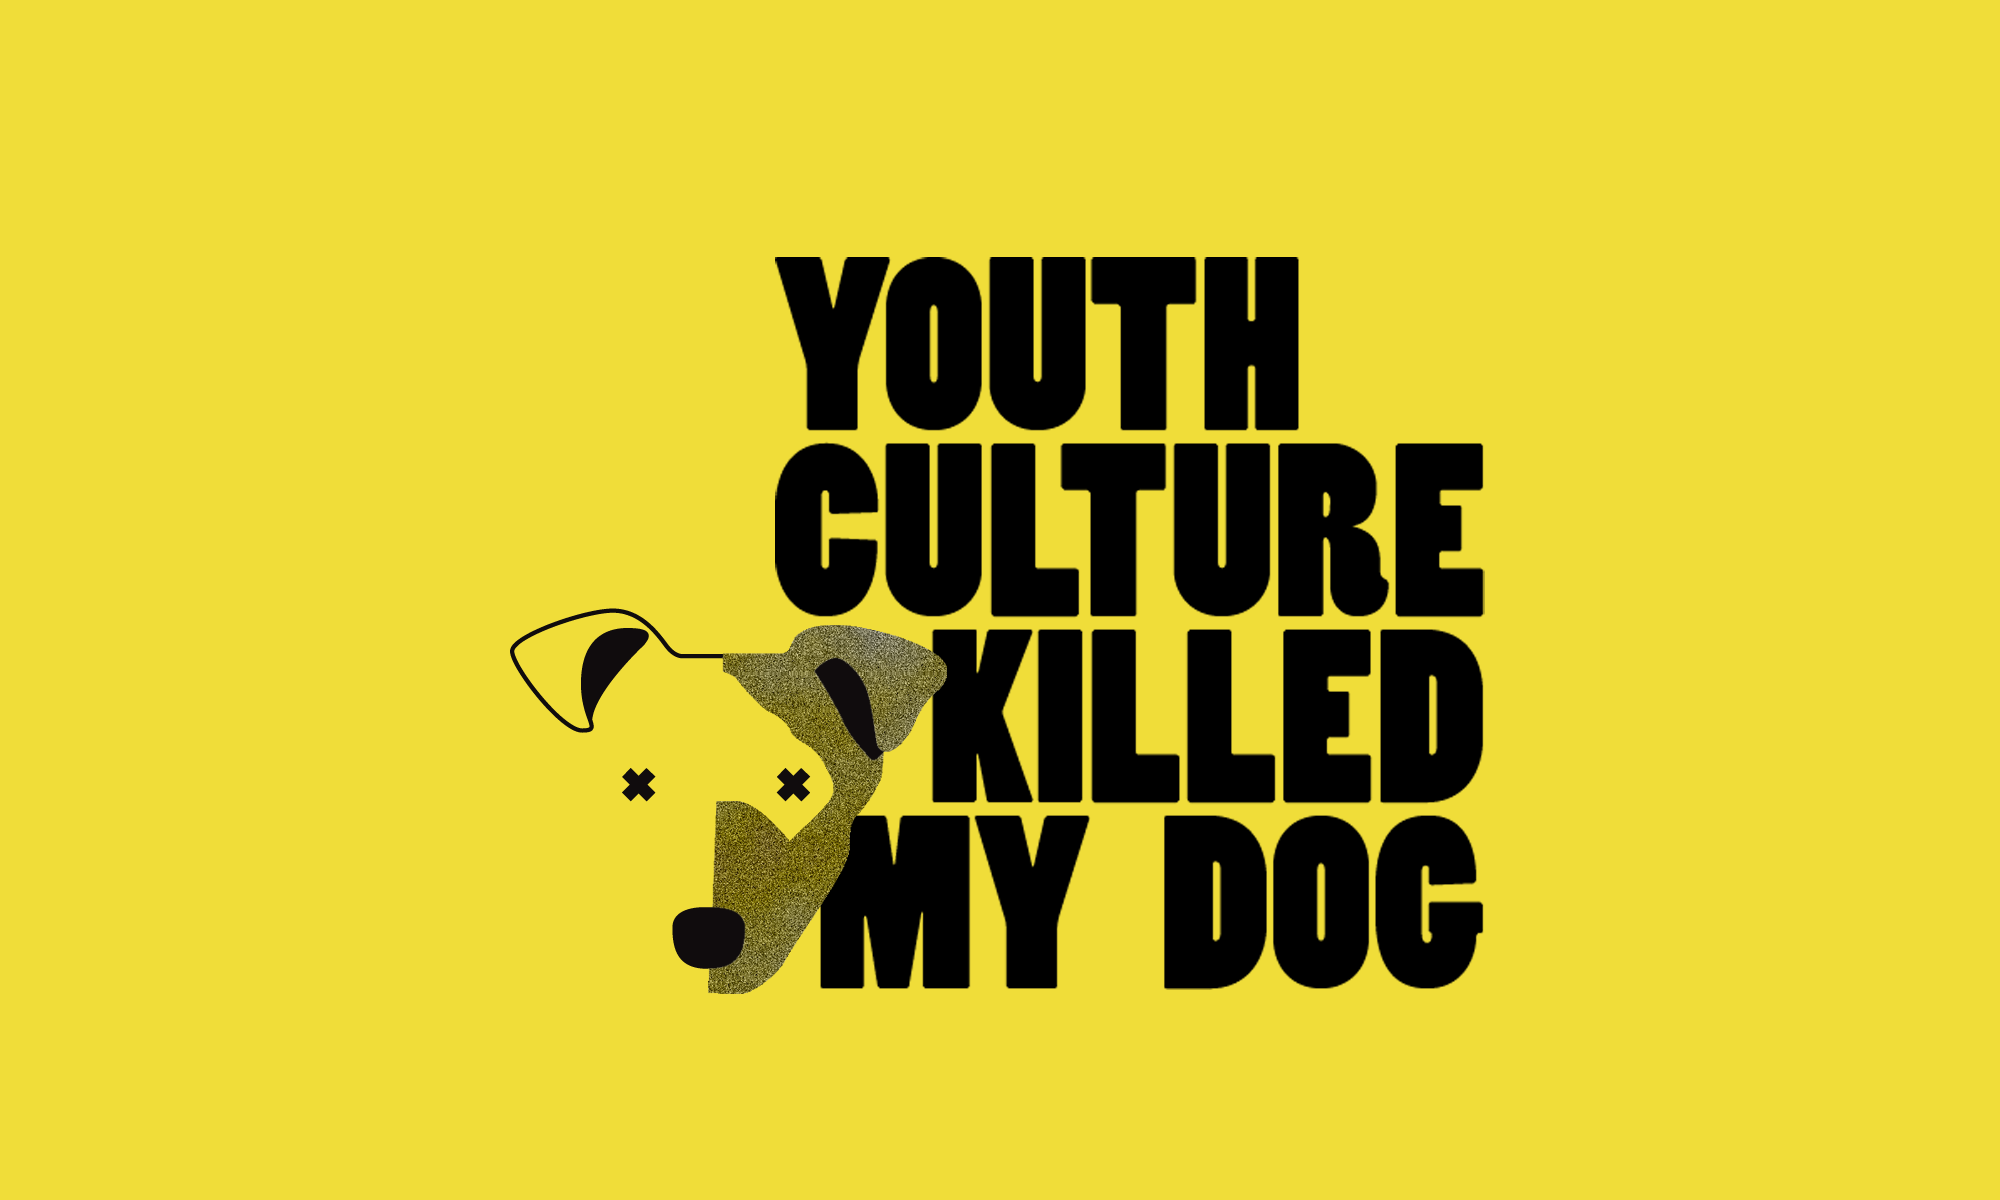 YOUTH CULTURE KILLED MY DOG